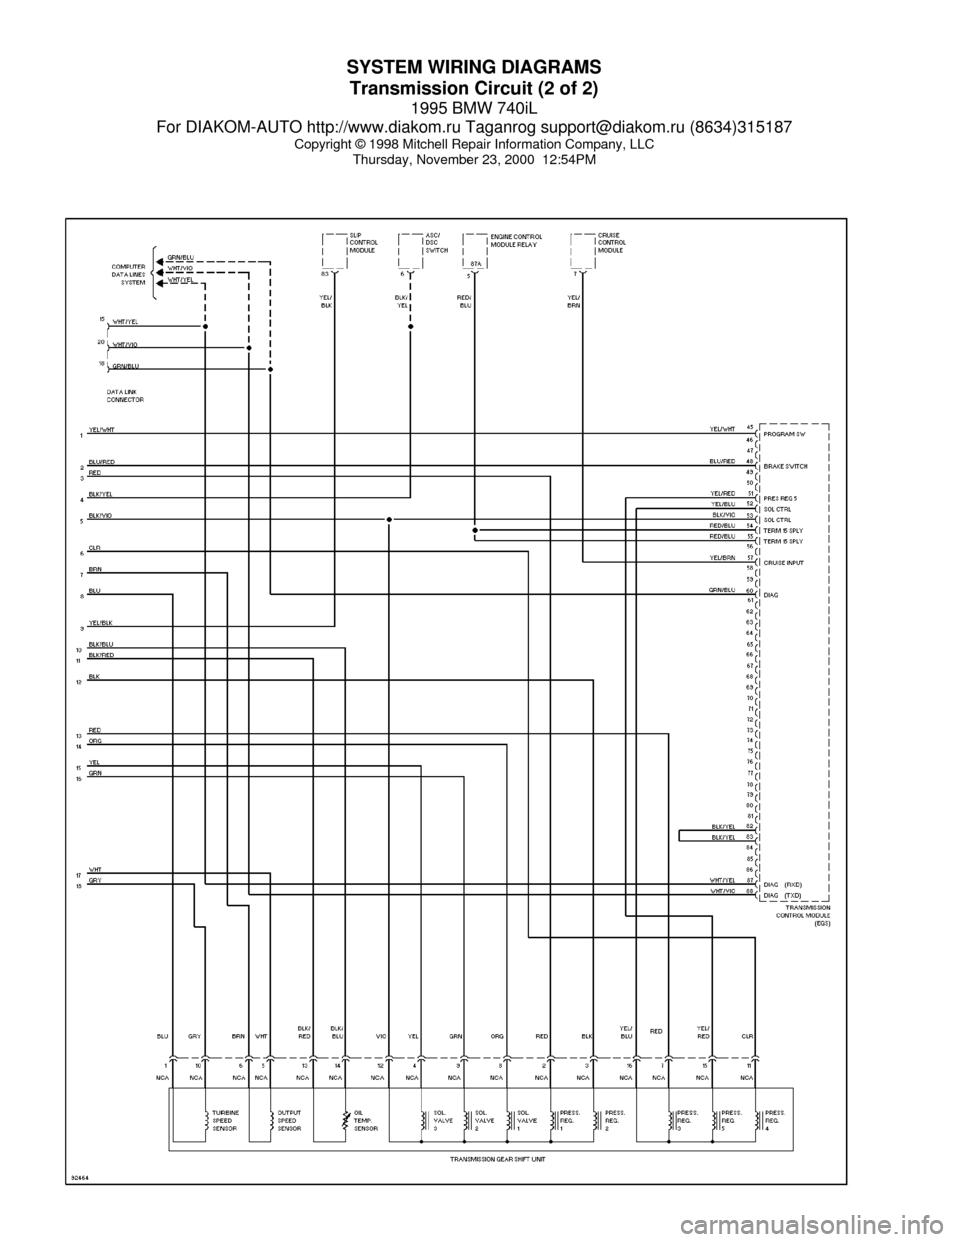 hight resolution of 1993 bmw 740il wiring diagram wiring diagram expert 2000 bmw 740il wiring diagram bmw 740i wiring diagram